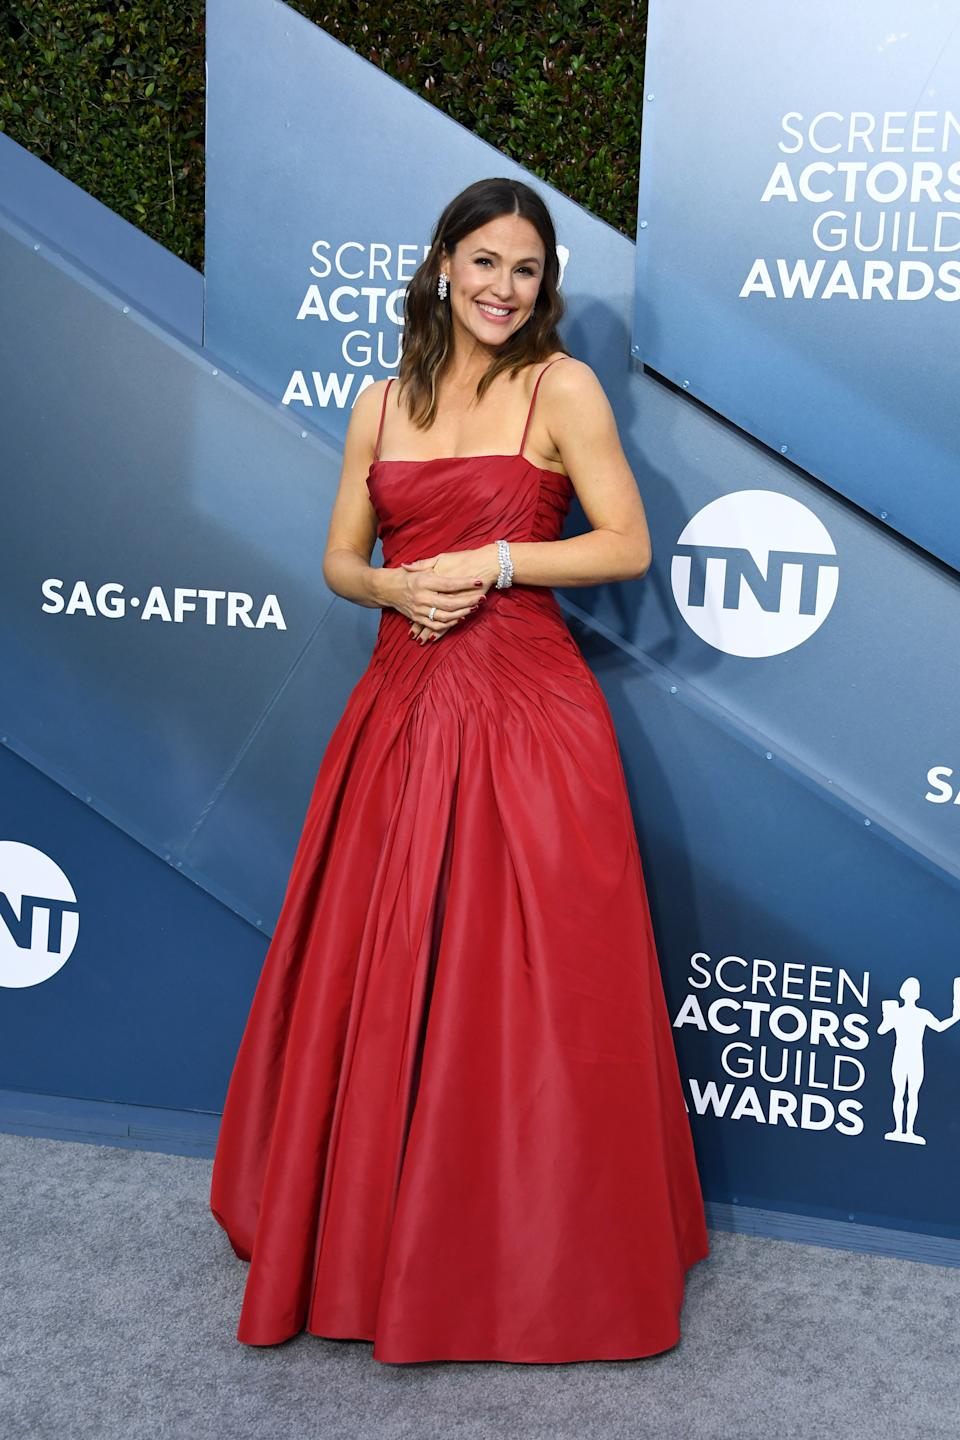 Lady in red! Garner turned heads as she arrived to present at the SAG Awards.